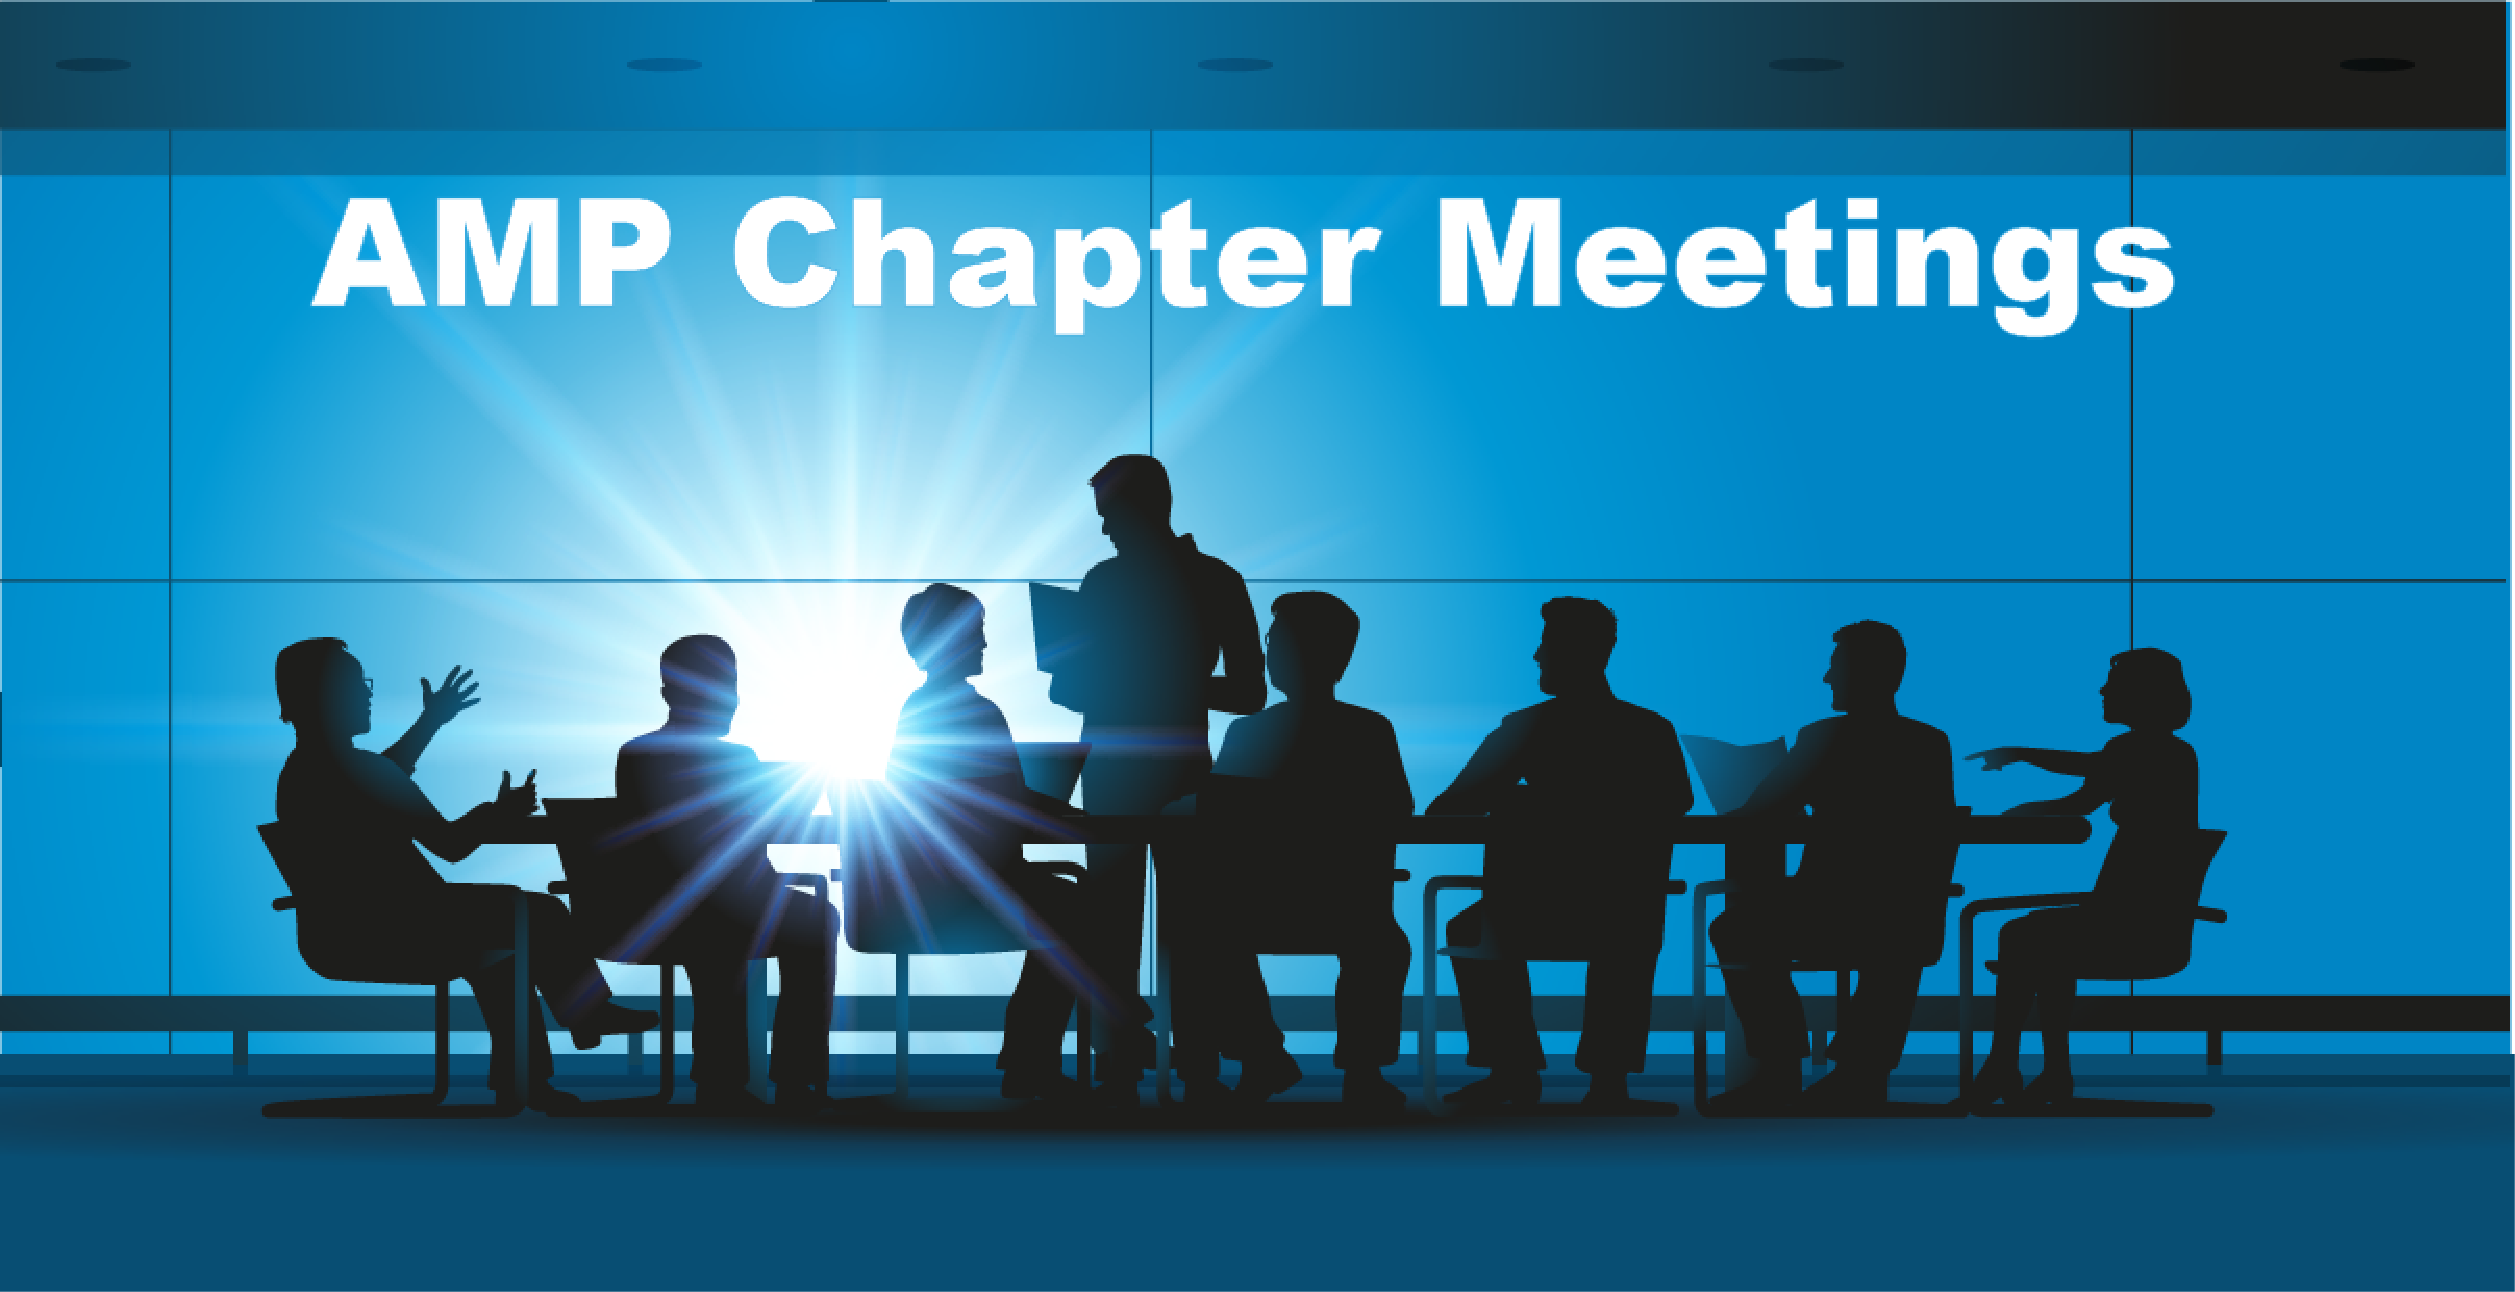 AMP Chapter Meetings